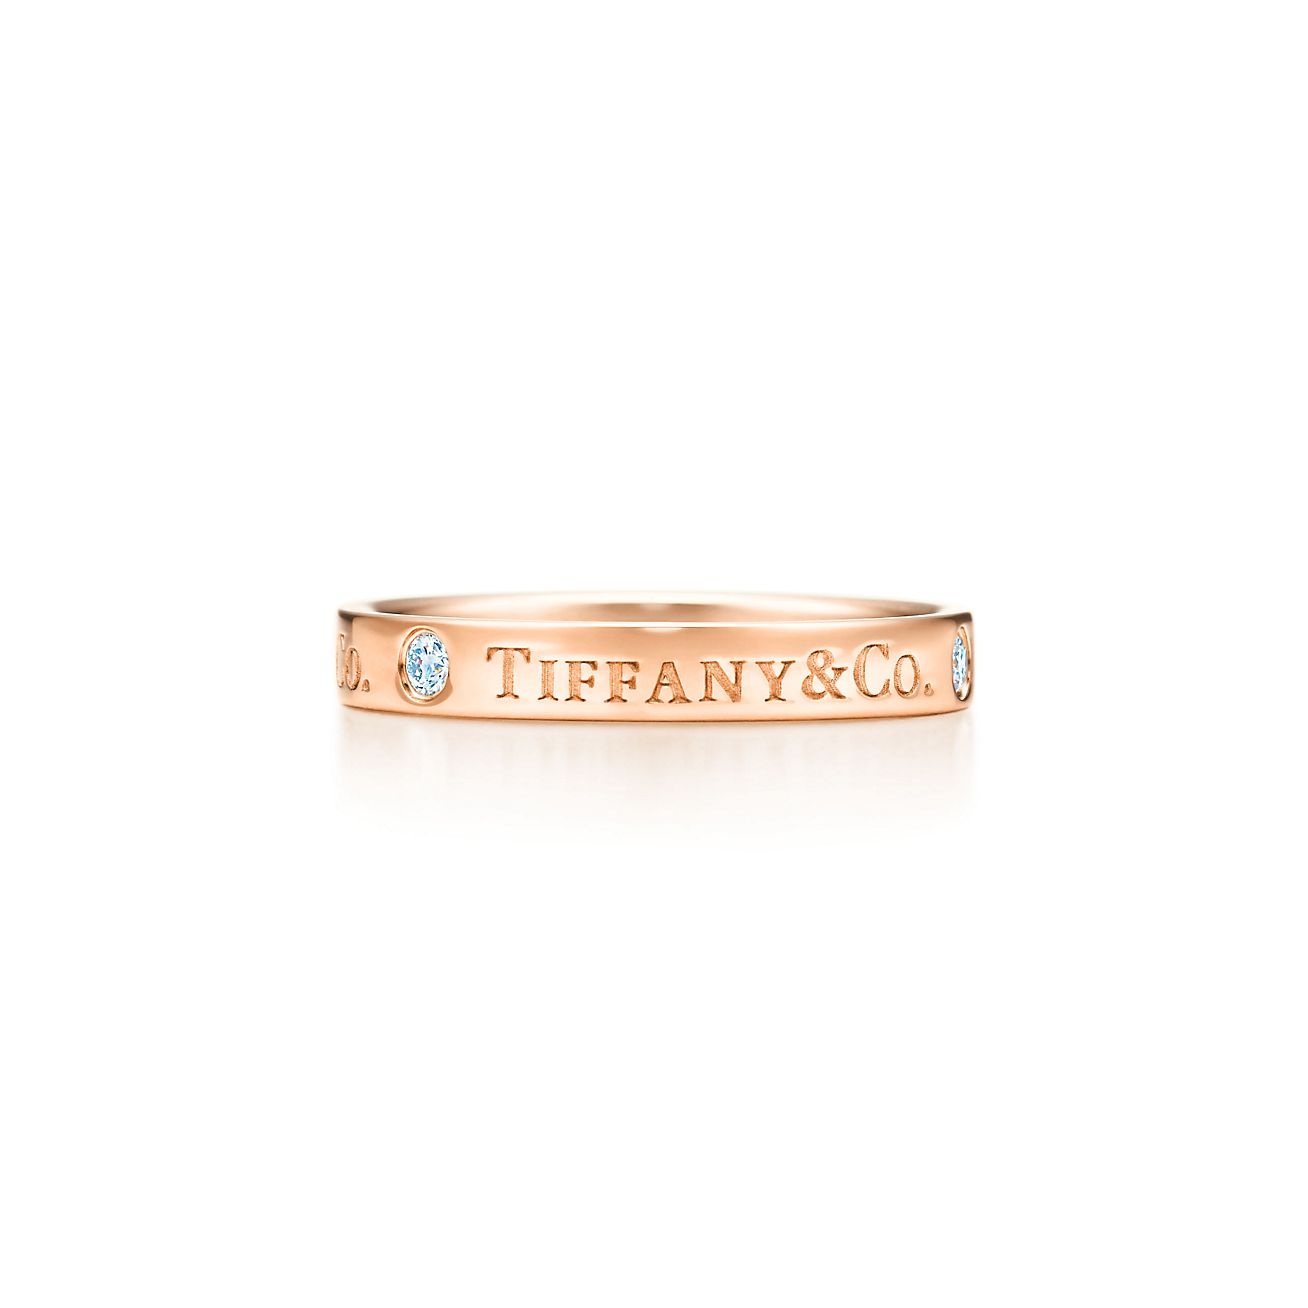 Tiffany Co Band Ring In 18k Rose Gold With Diamonds 3 Mm Wide